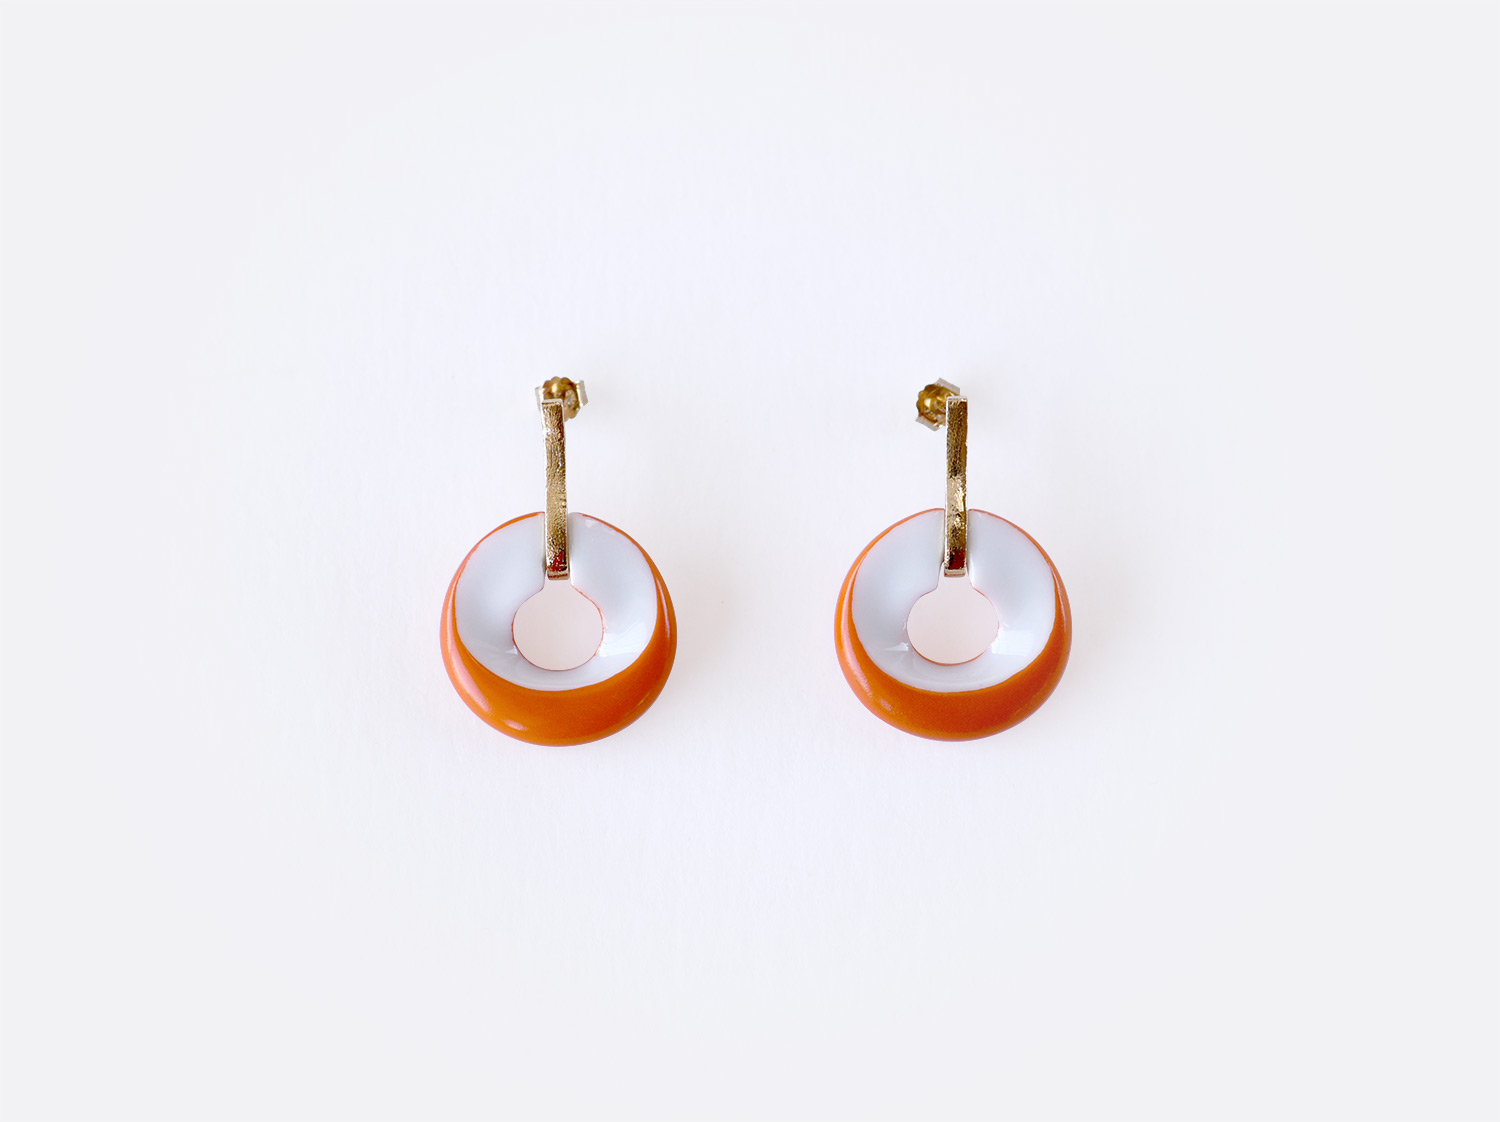 China Earrings of the collection ALBA ORANGE | Bernardaud